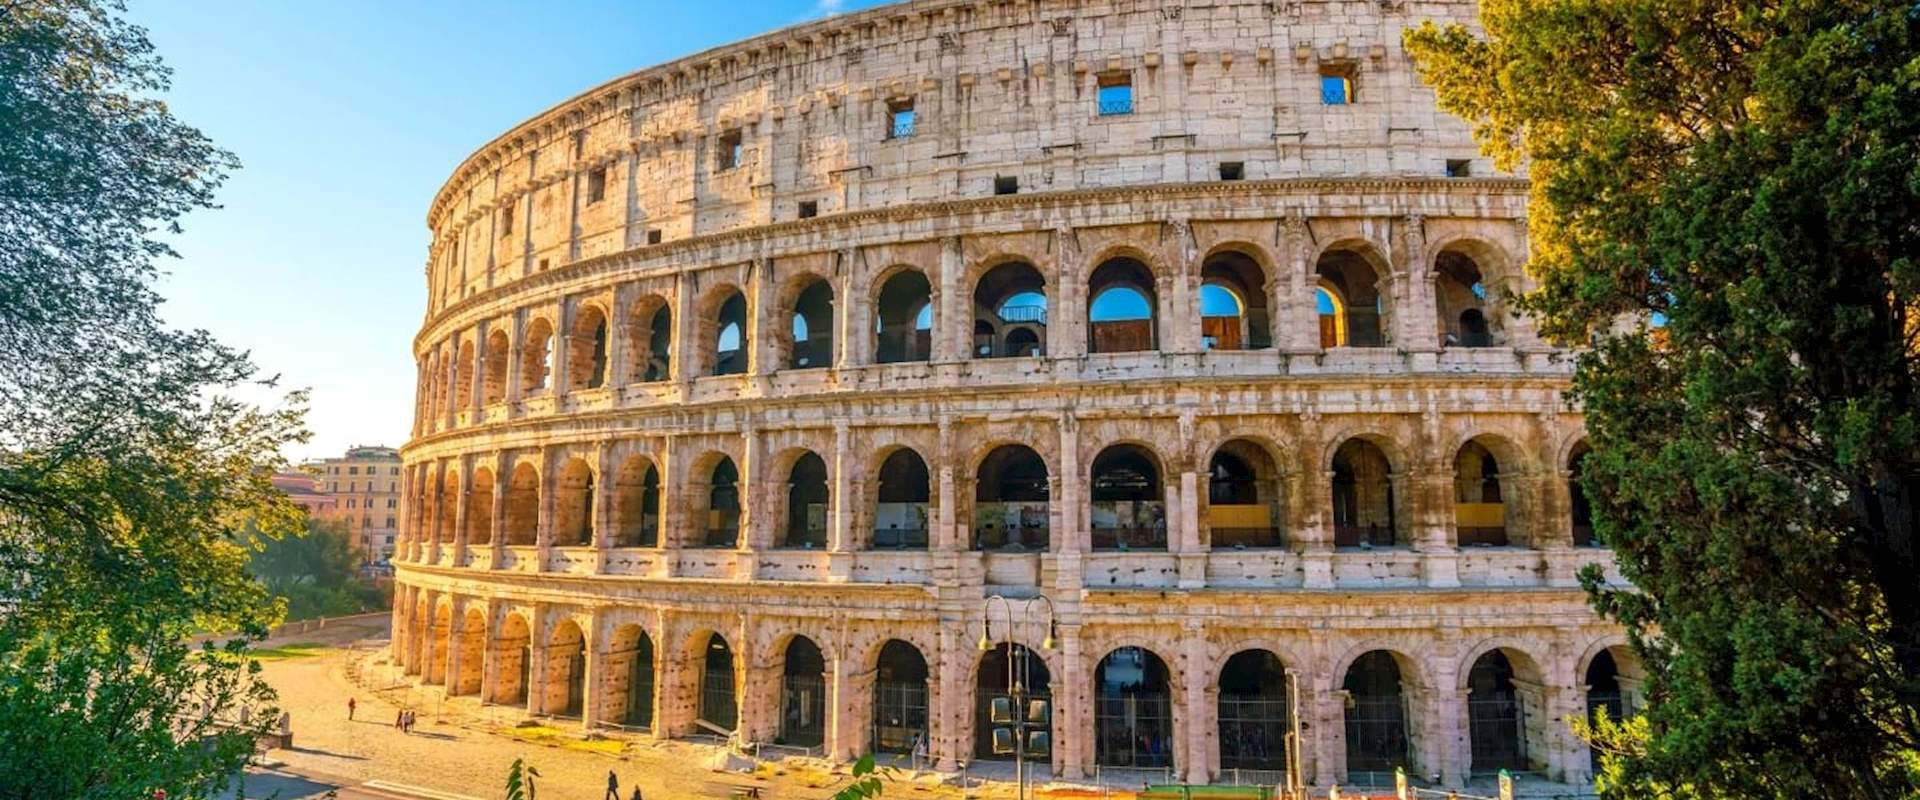 Skip the Line Colosseum & Roman Forum Tour Tickets - City ...